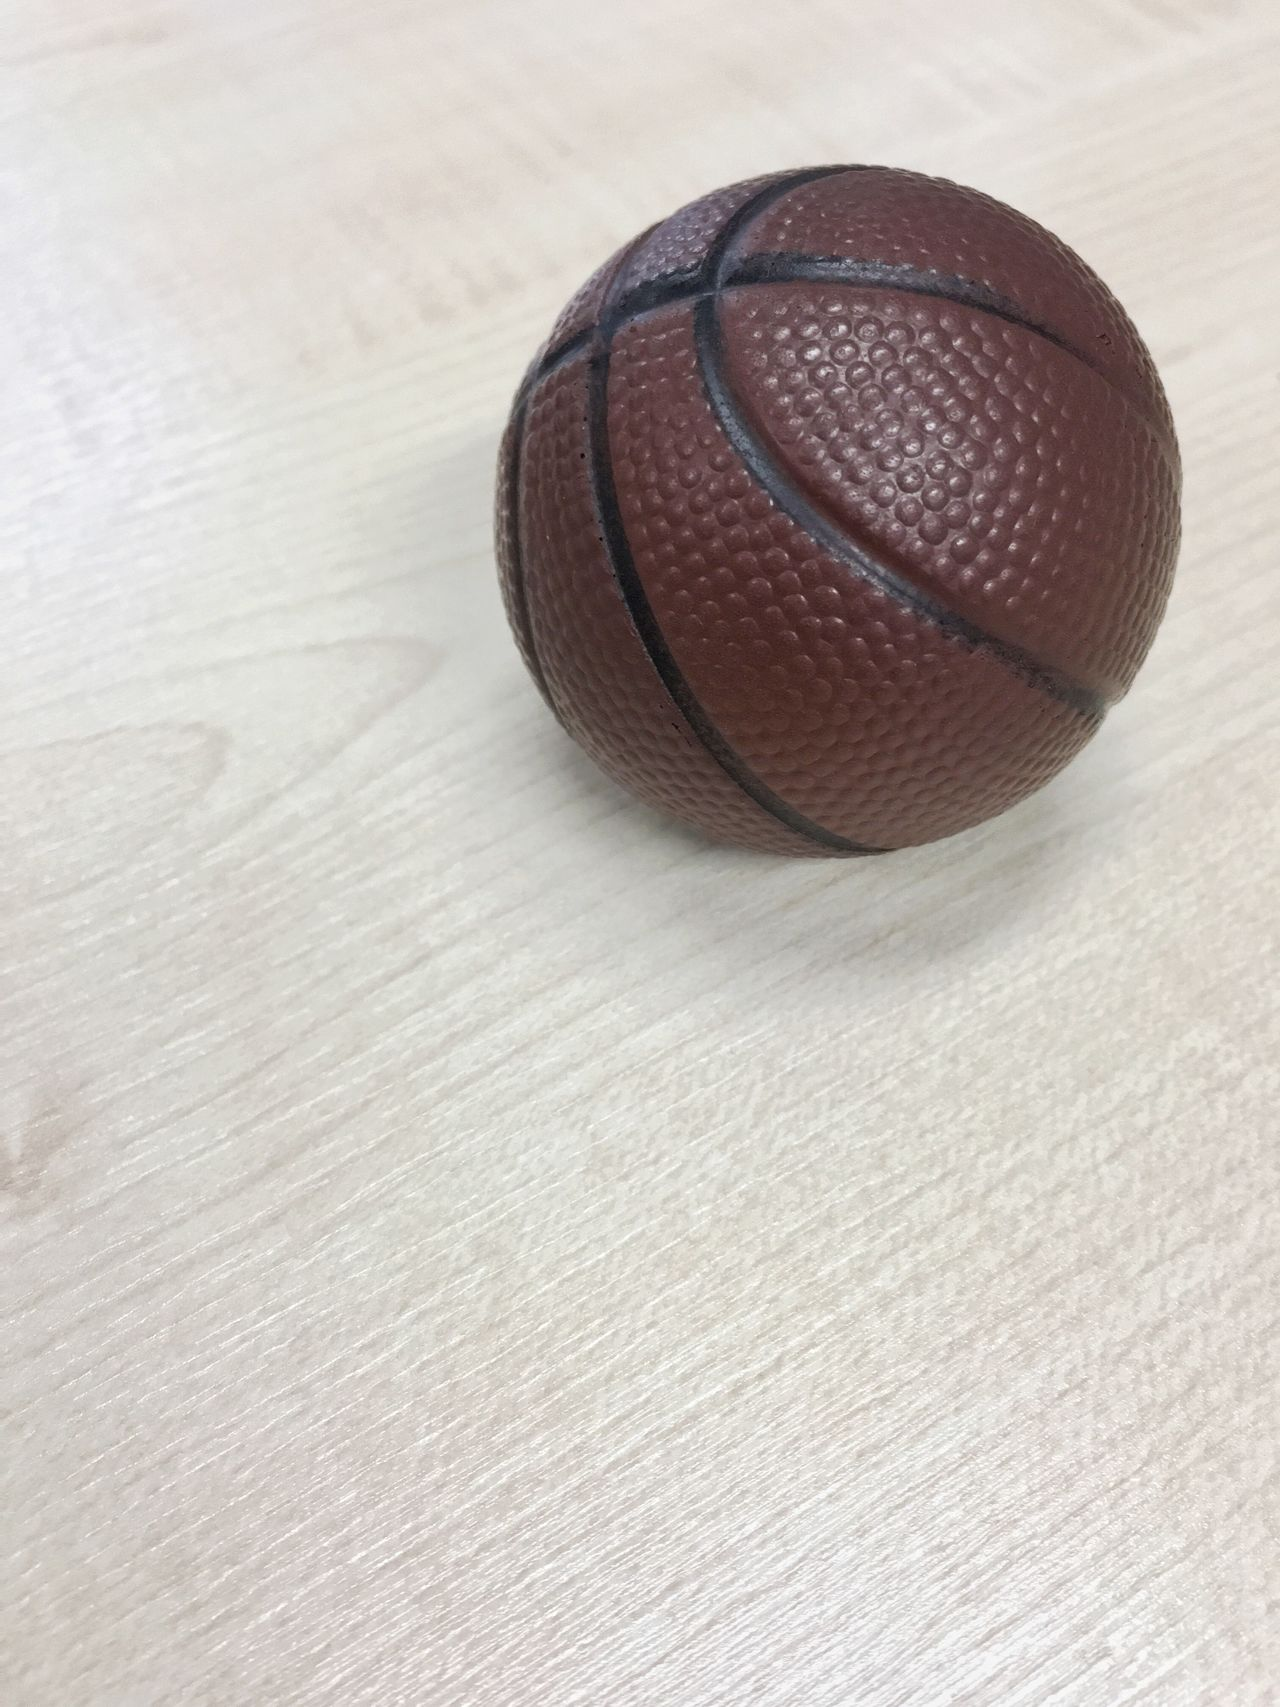 Sport Sport Style Basketball Basketball Game Basketball - Sport Basketball Is Life Basket